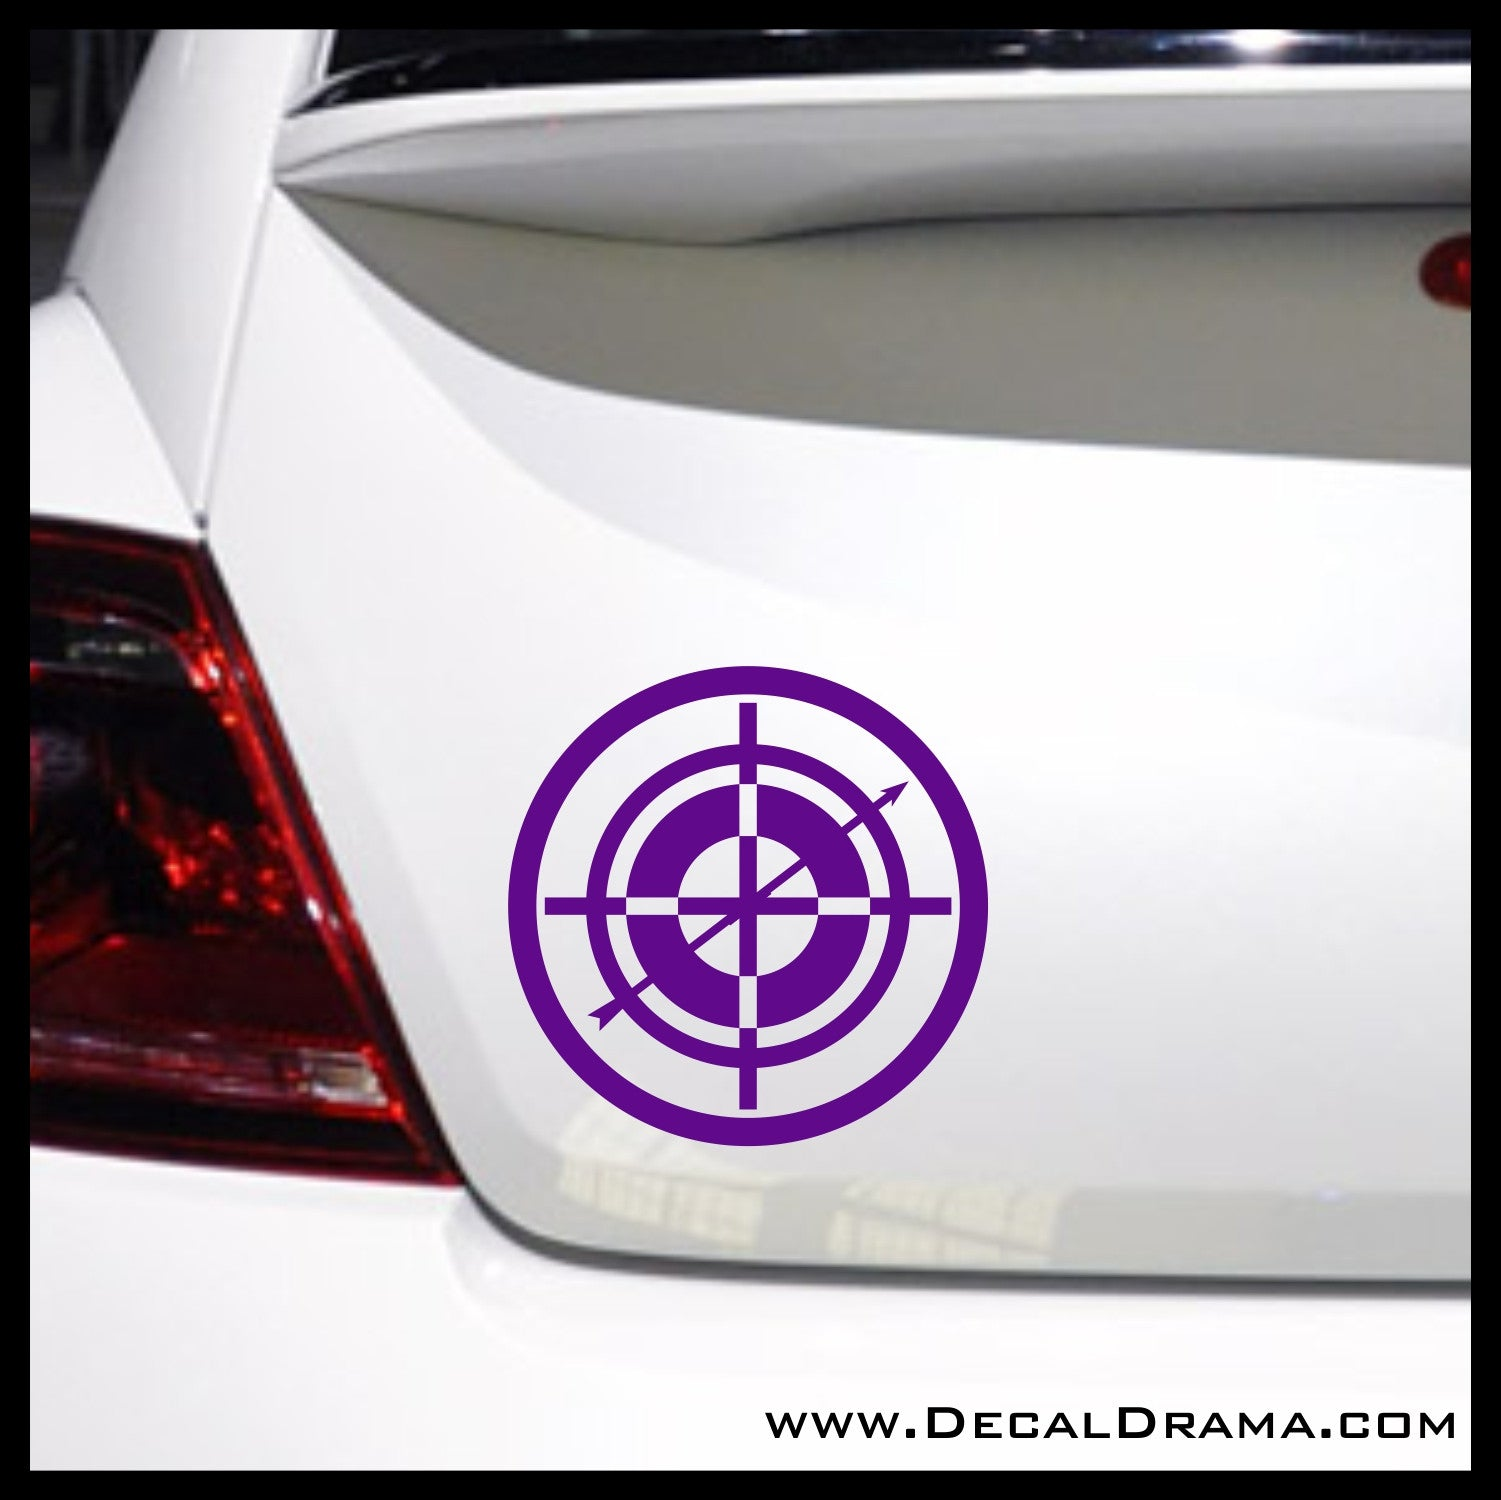 Hawkeye Target-Scope emblem, Marvel Comics Avengers, Vinyl Car/Laptop Decal